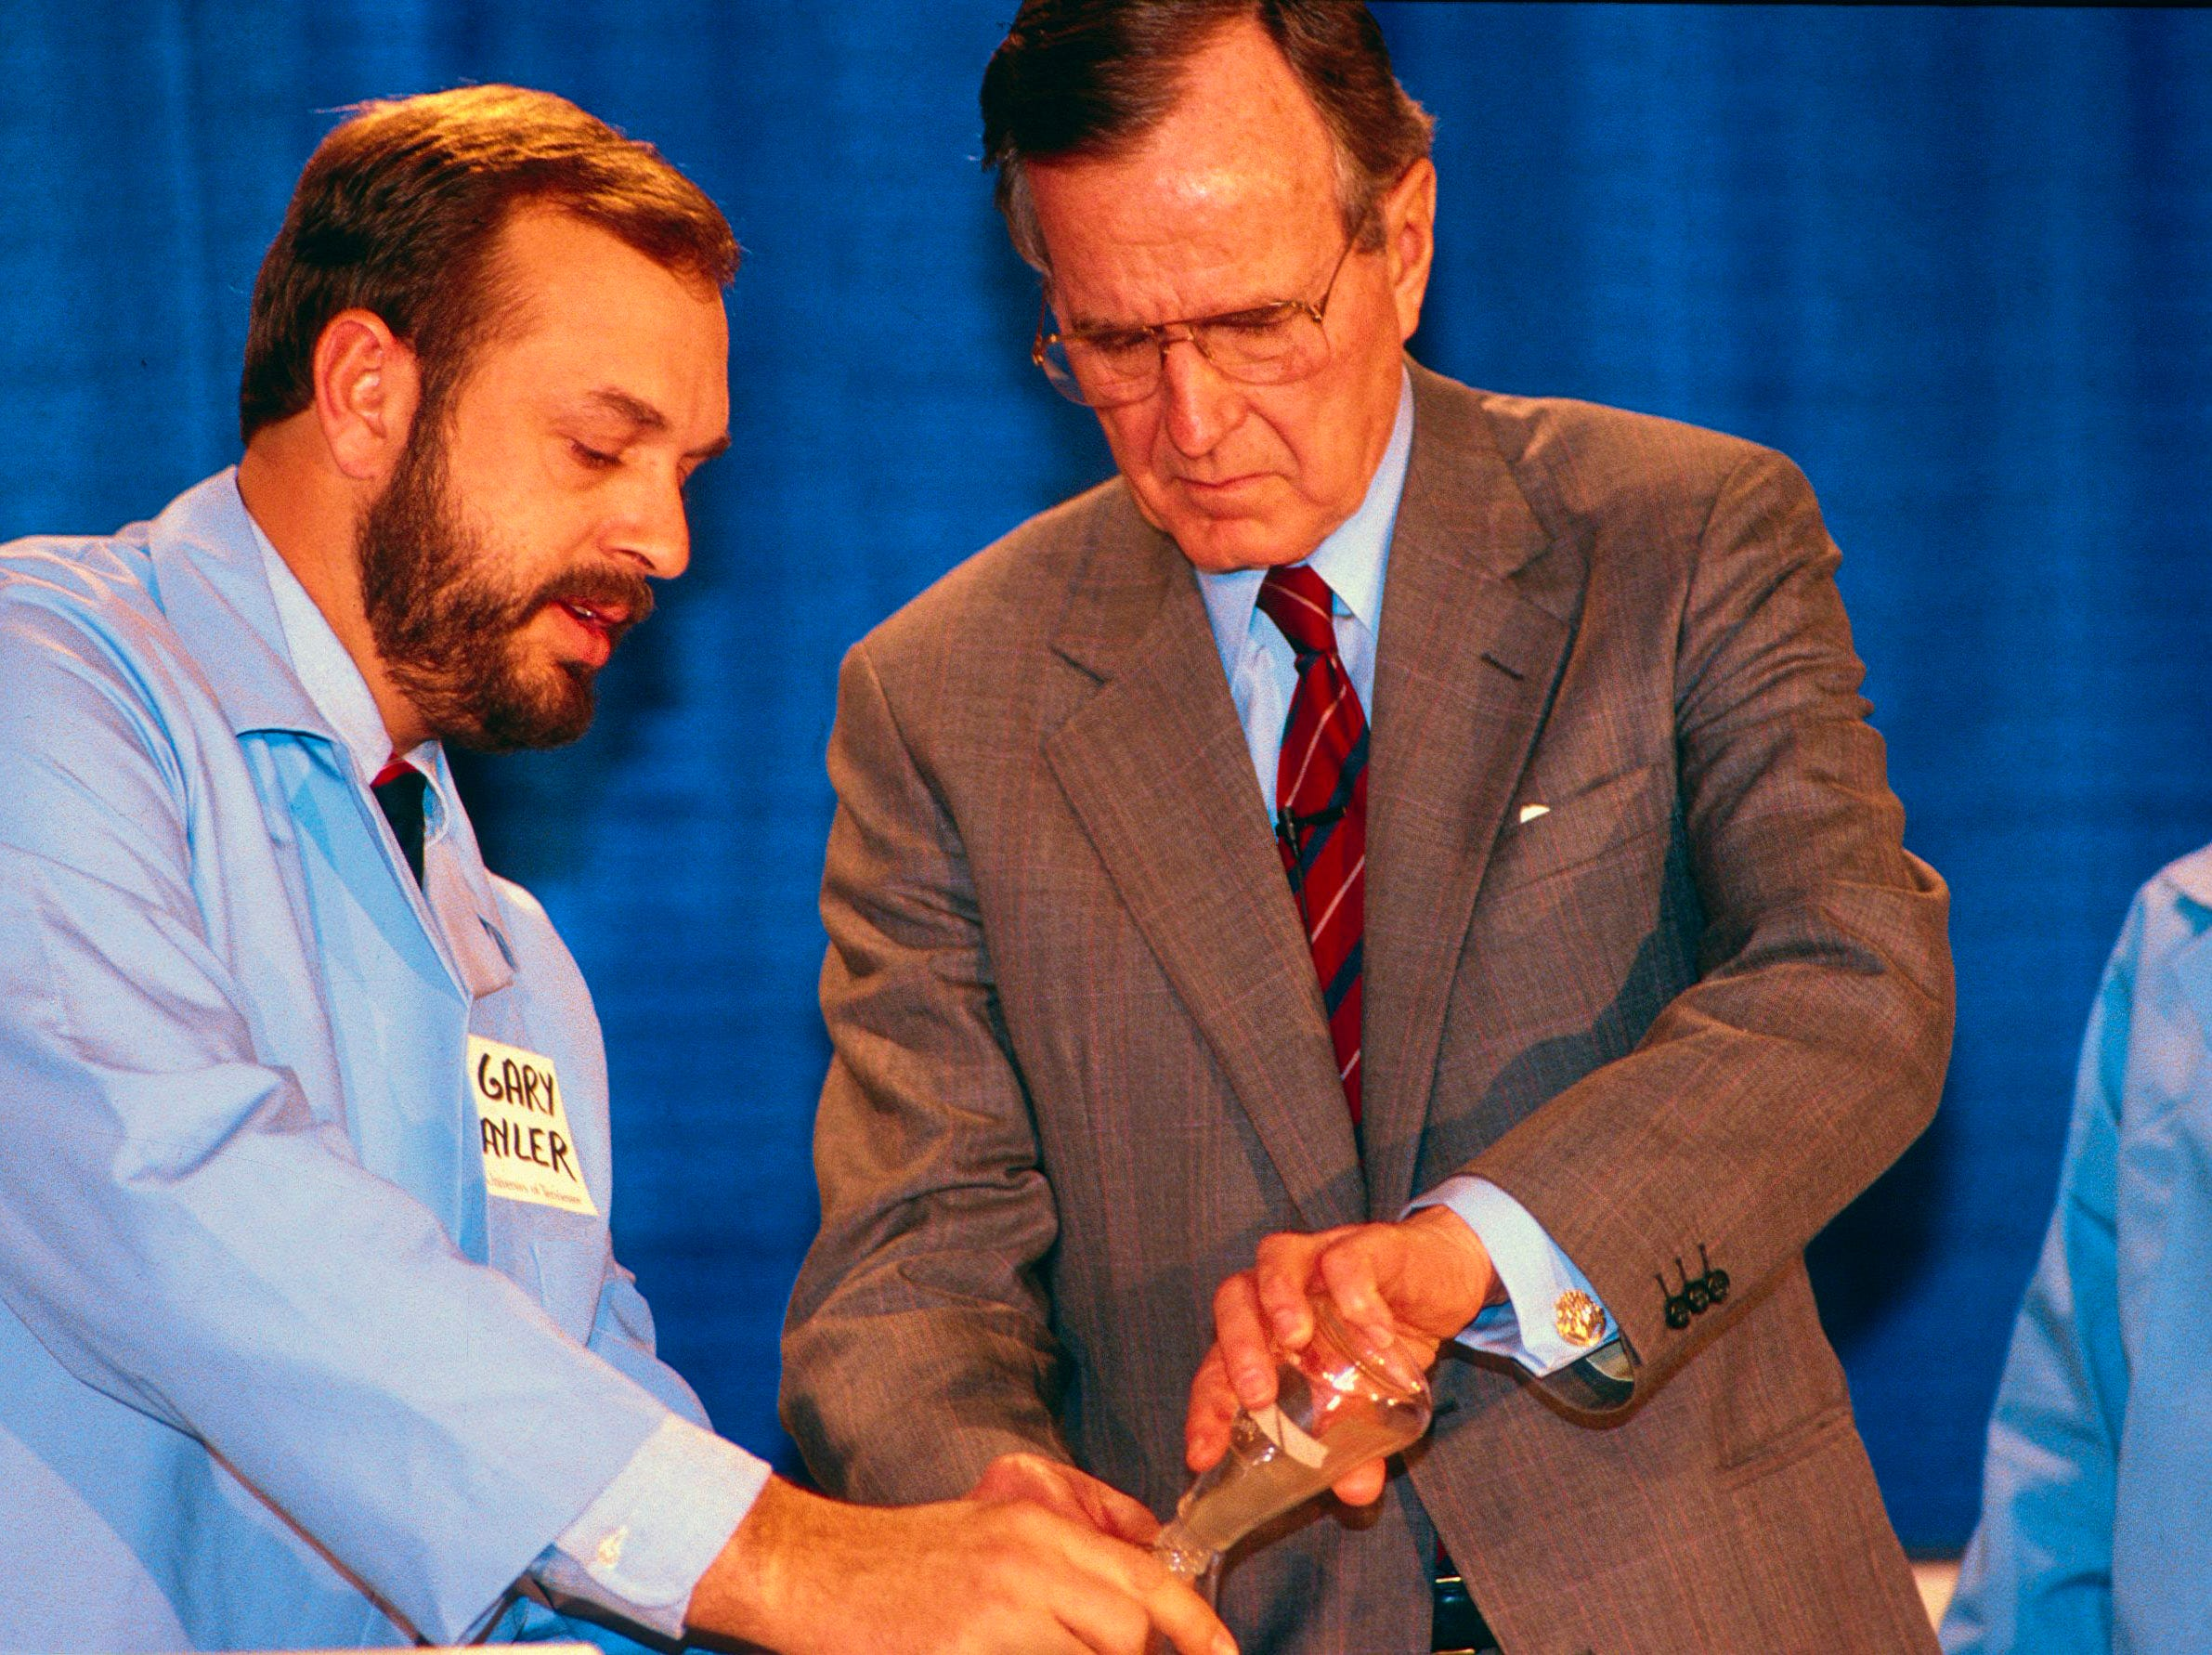 """Dr. Gary Sayler, left, and President George H.W. Bush perform an experiment for the cameras on Feb. 2, 1990, at the University of Tennessee. Sayler, director of the UT Center for Environmental Biotechnology, was demonstrating how bacteria can be used to """"eat,"""" or metabolize toxic waste."""